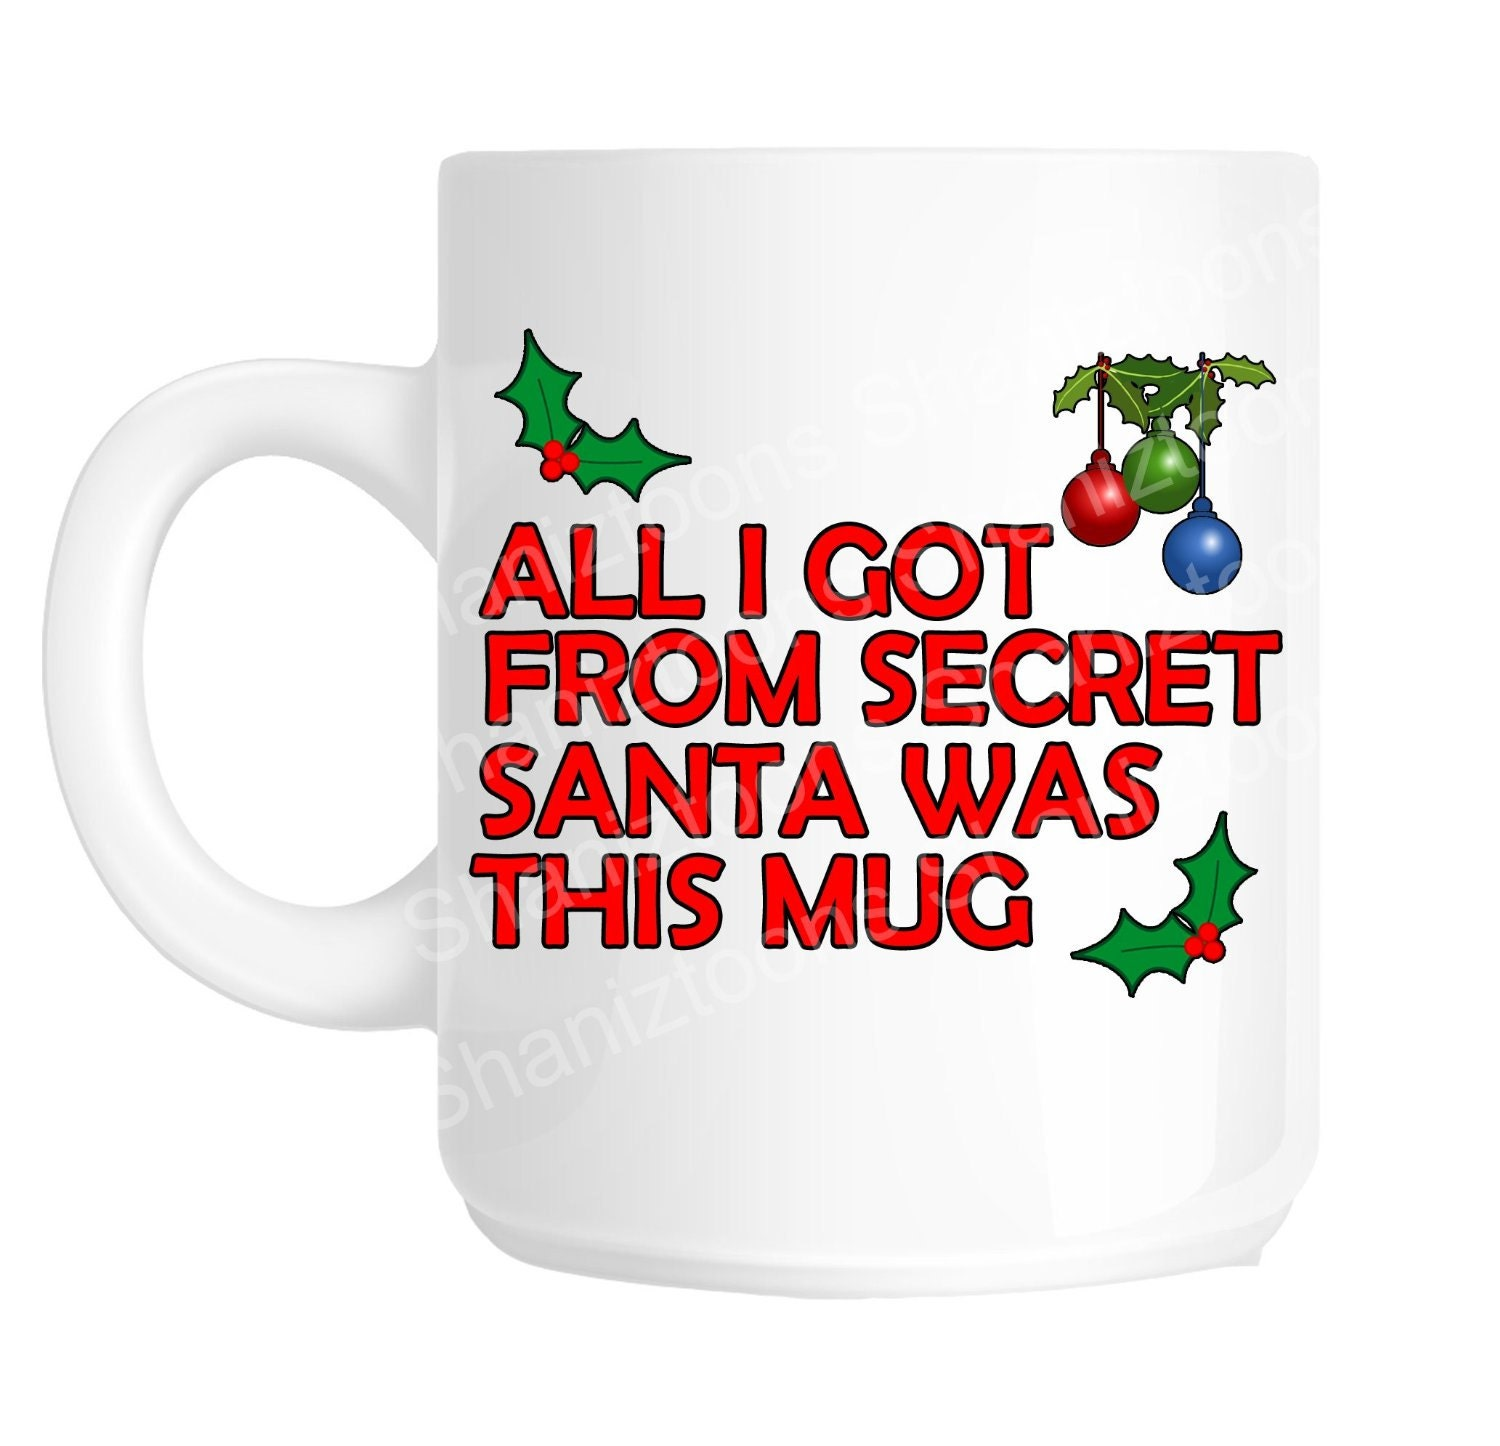 Secret santa funny office joke gift mug shan759 for Fun secret santa gifts